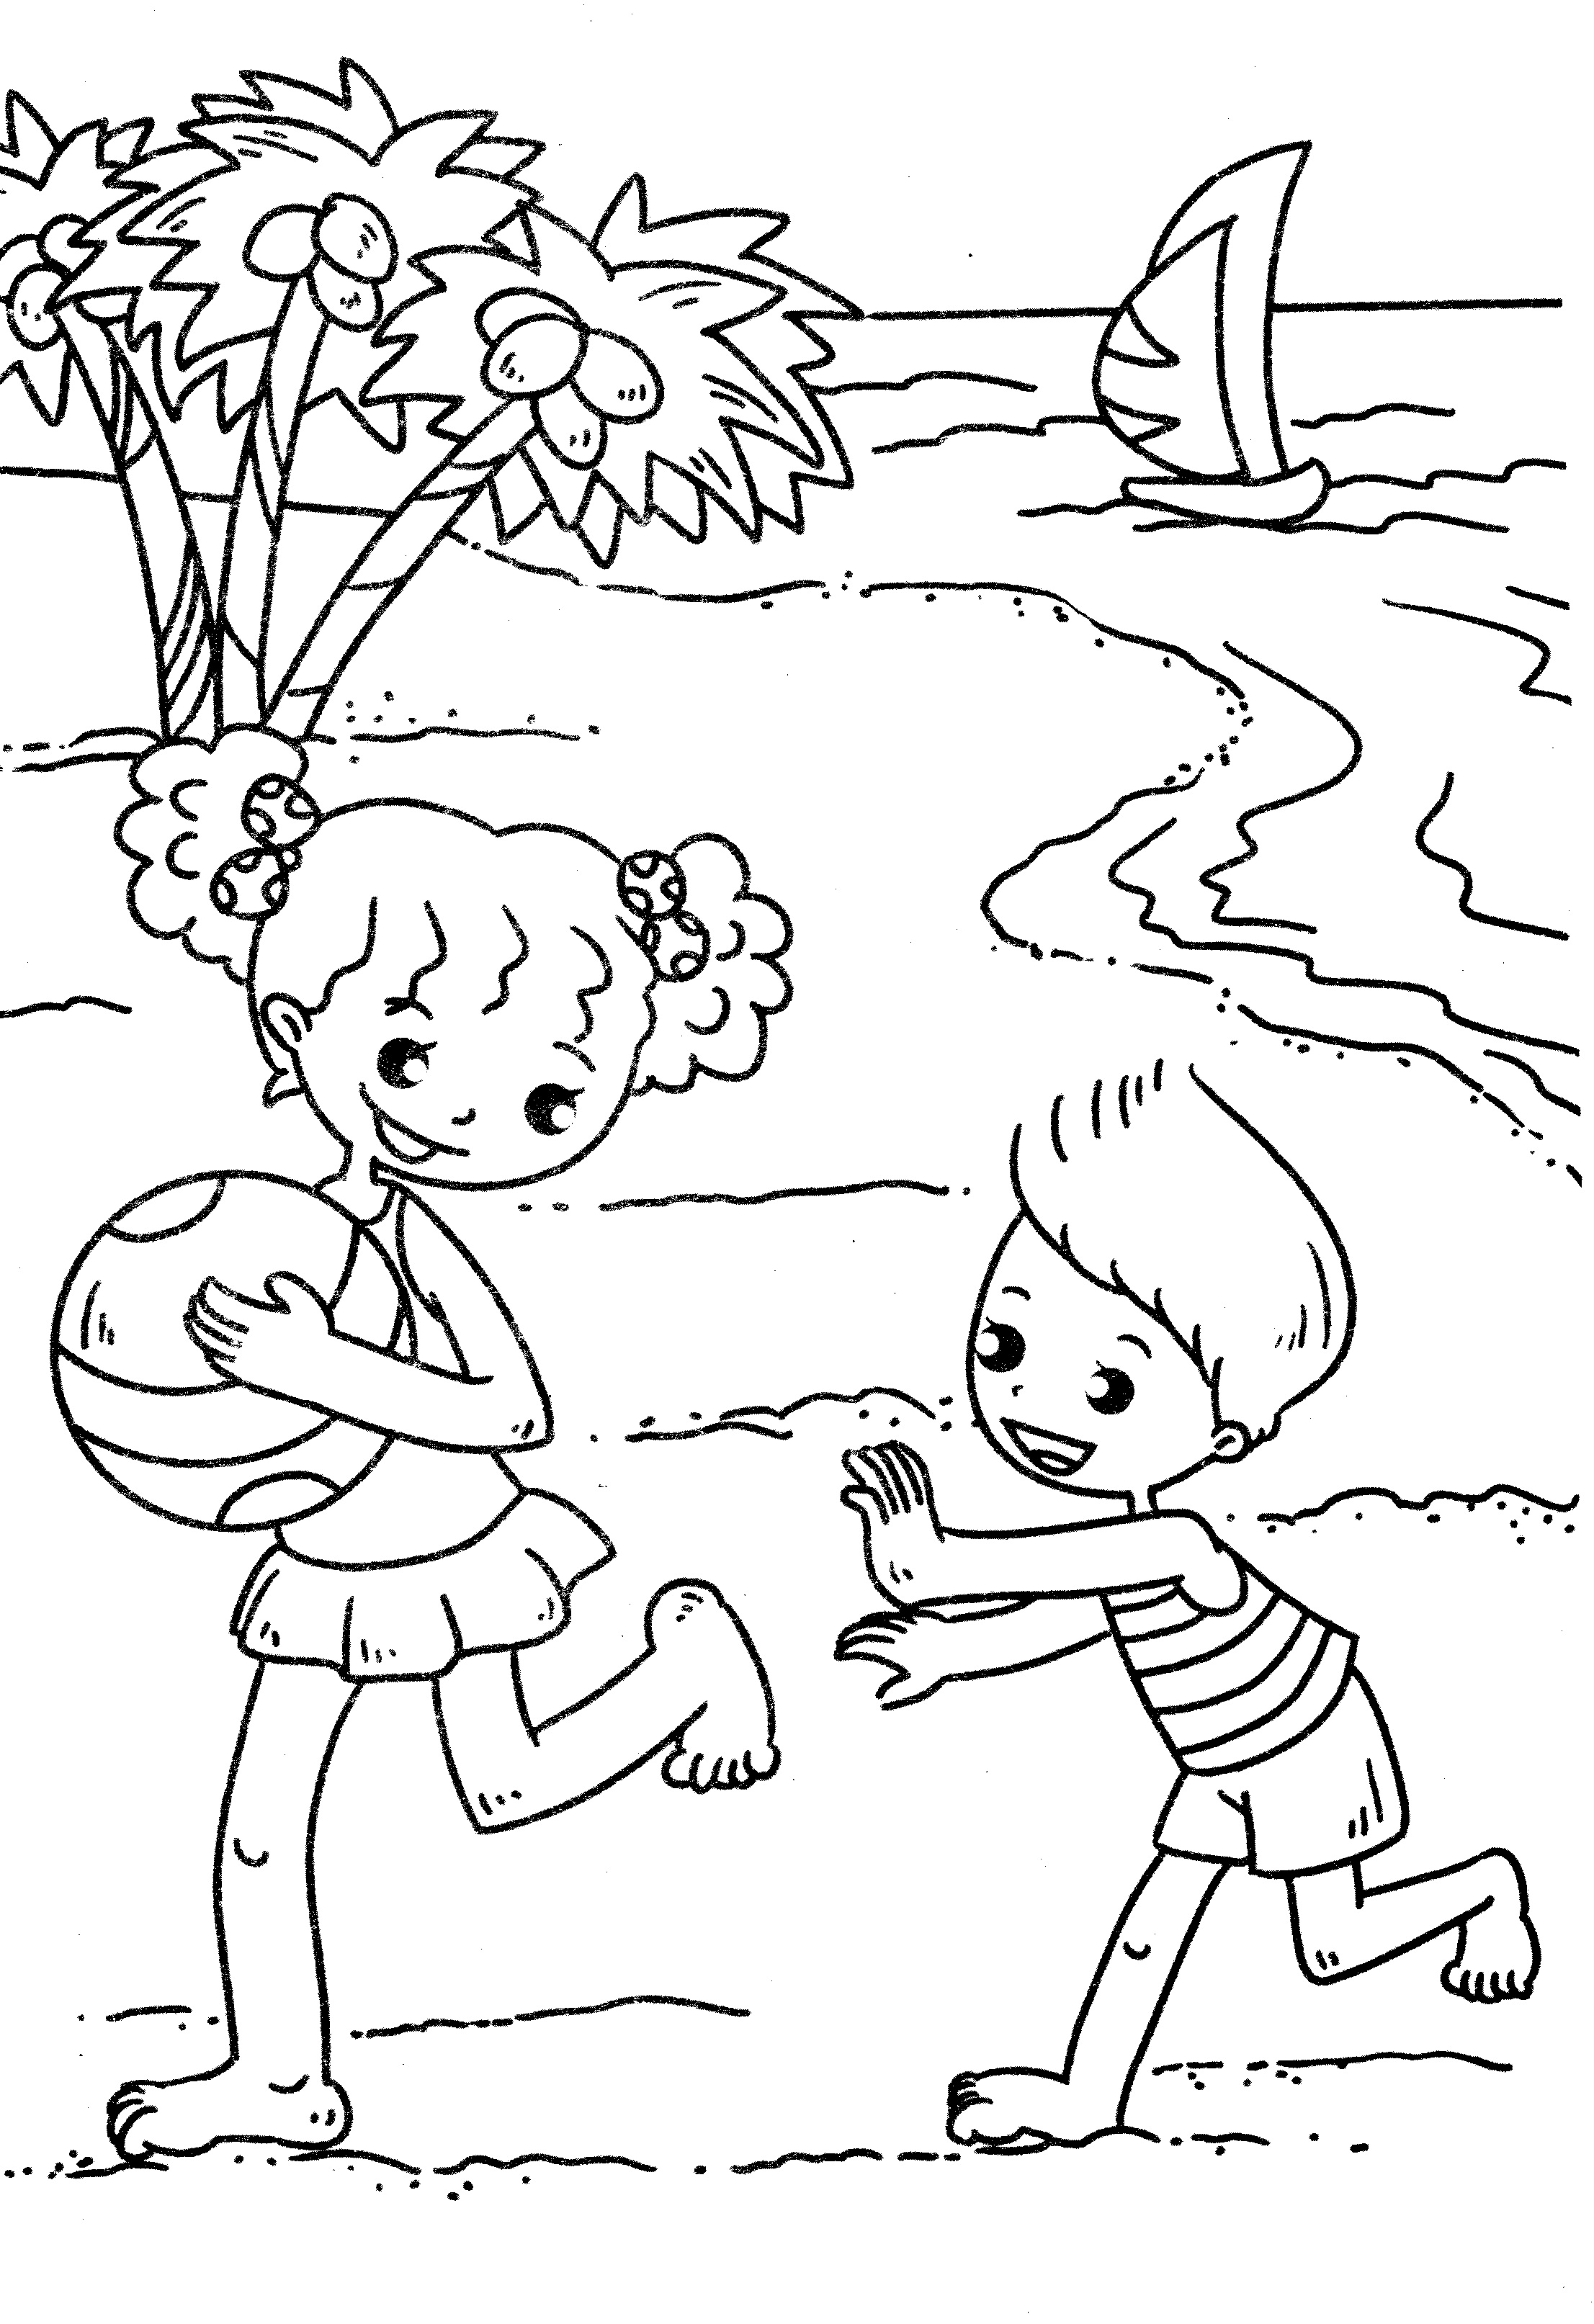 Printable coloring pages sand castle - Free Printable Beach Coloring Pages For Kids